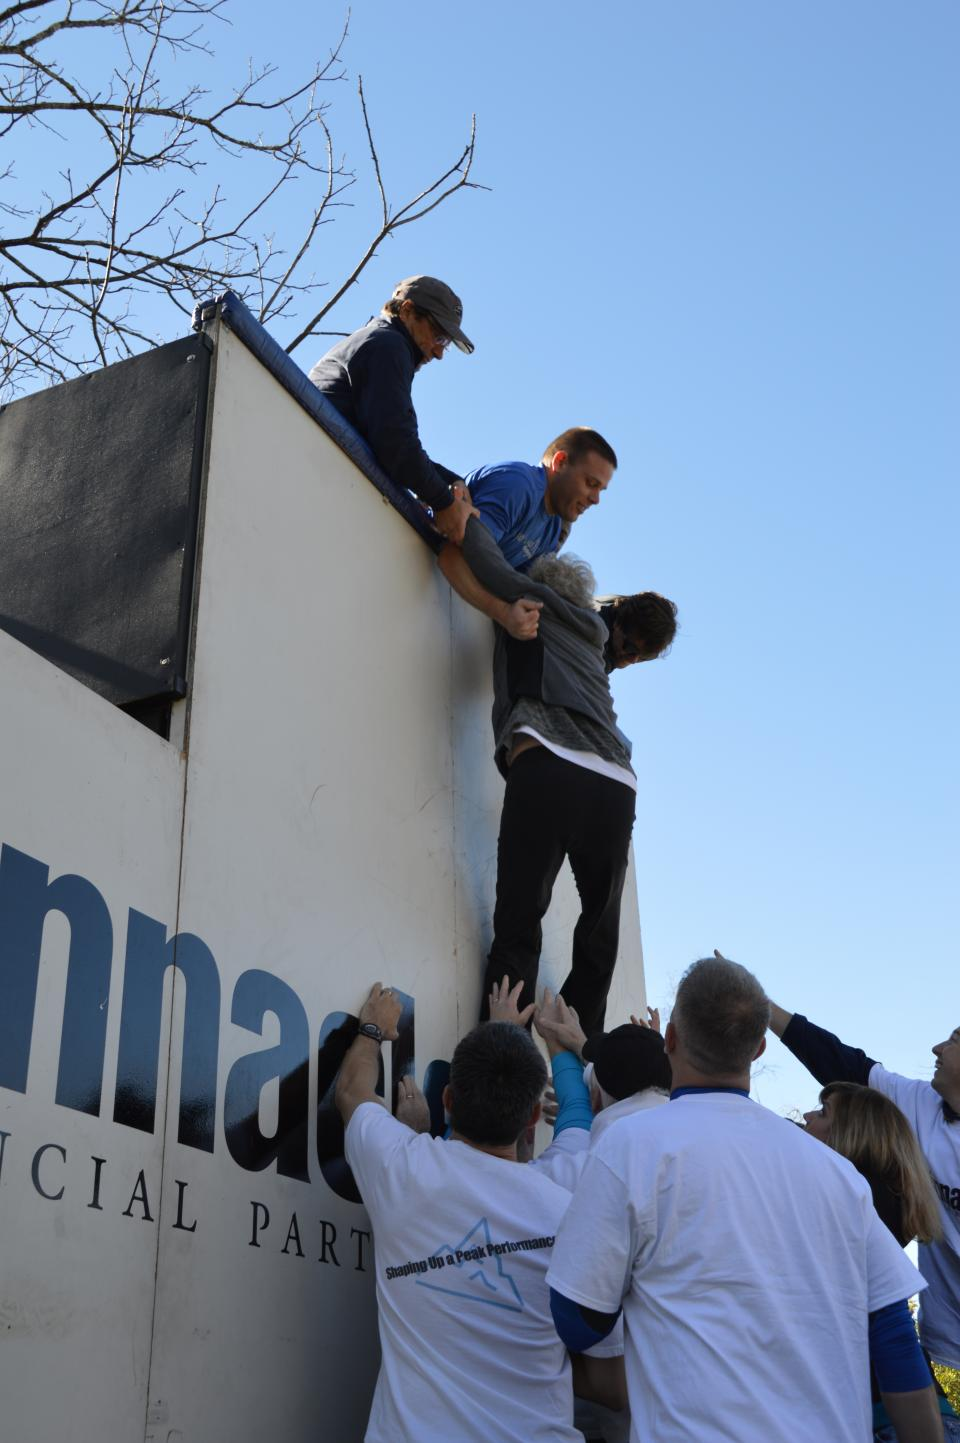 As part of their team building exercises during a three-day cultural orientation with the CEO, new Pinnacle associates scale a 12-foot flat wall, an impossible task without the help of teammates.